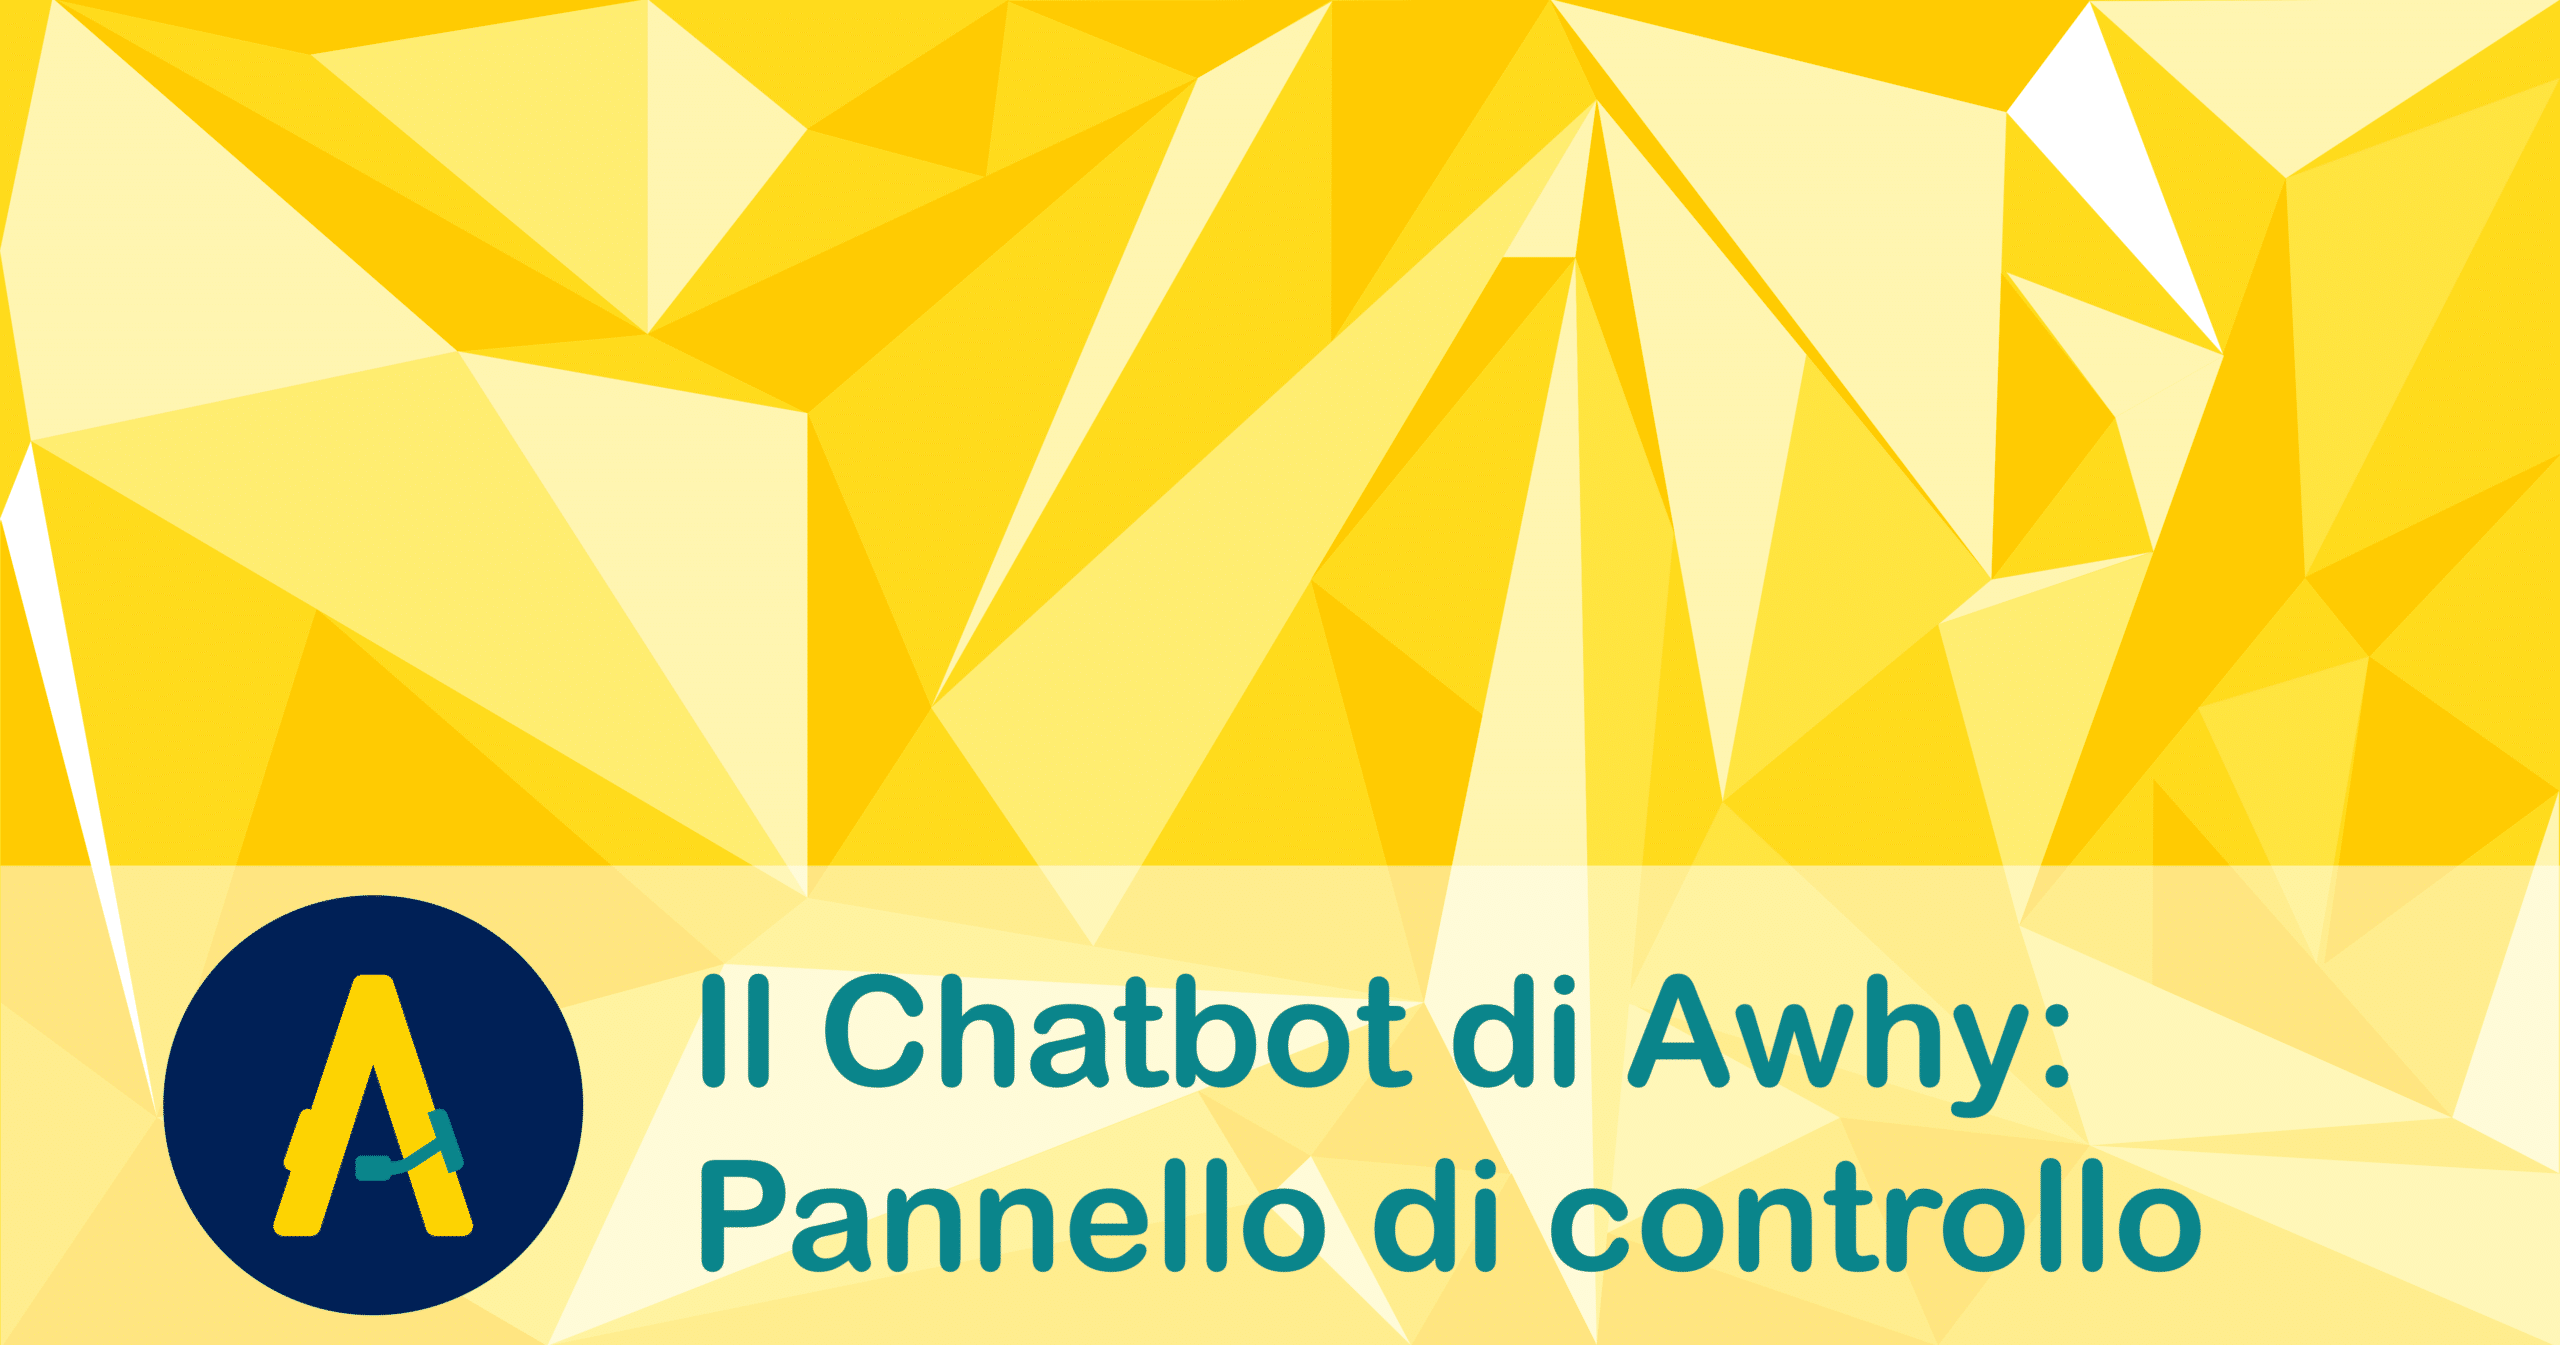 Il Chatbot di Awhy